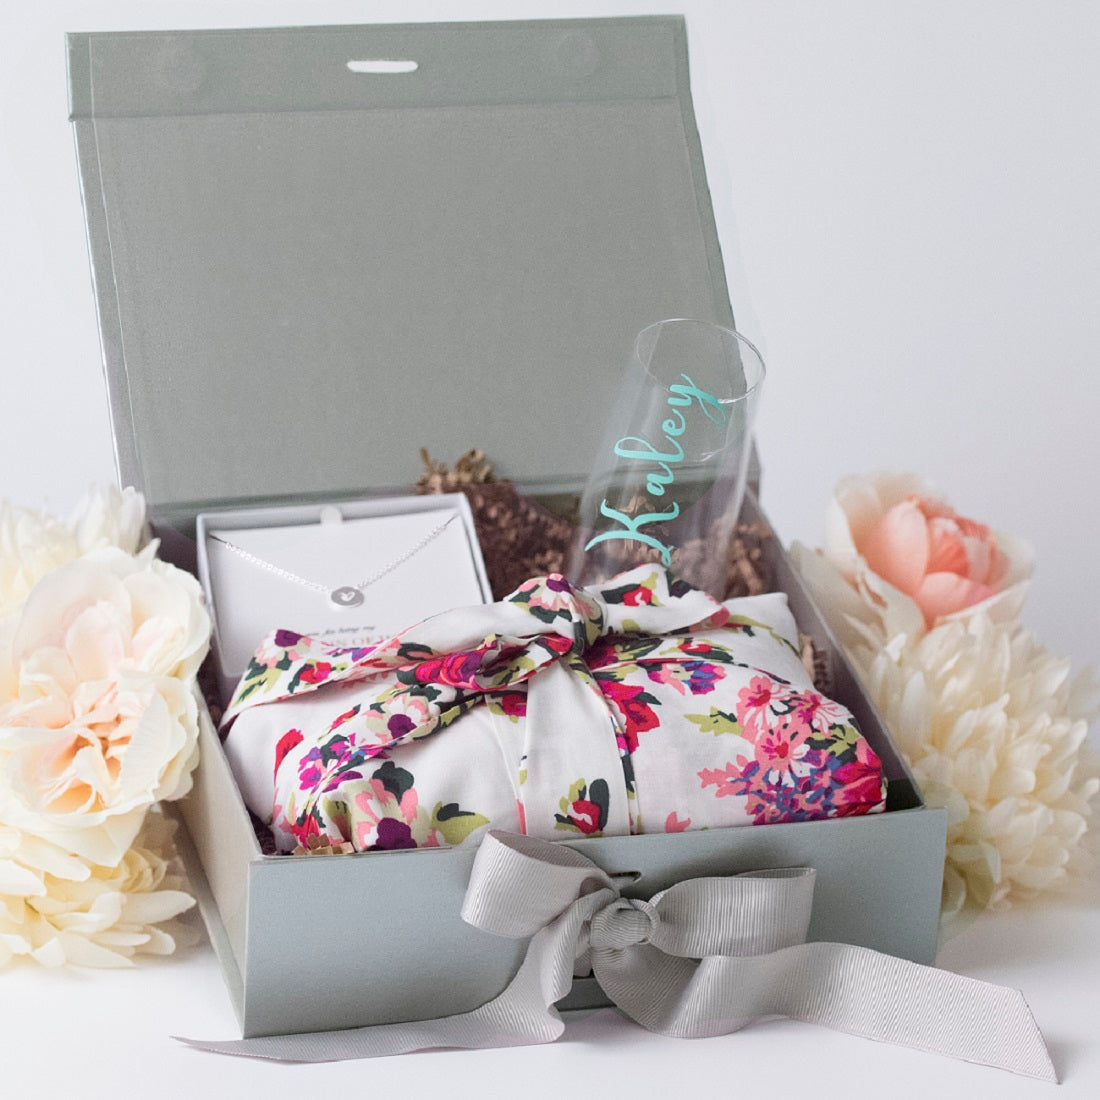 Shimmer Dreams Gift Box Personalized Robe Champagne Glass Necklace Bridesmaid Gifts Boutique